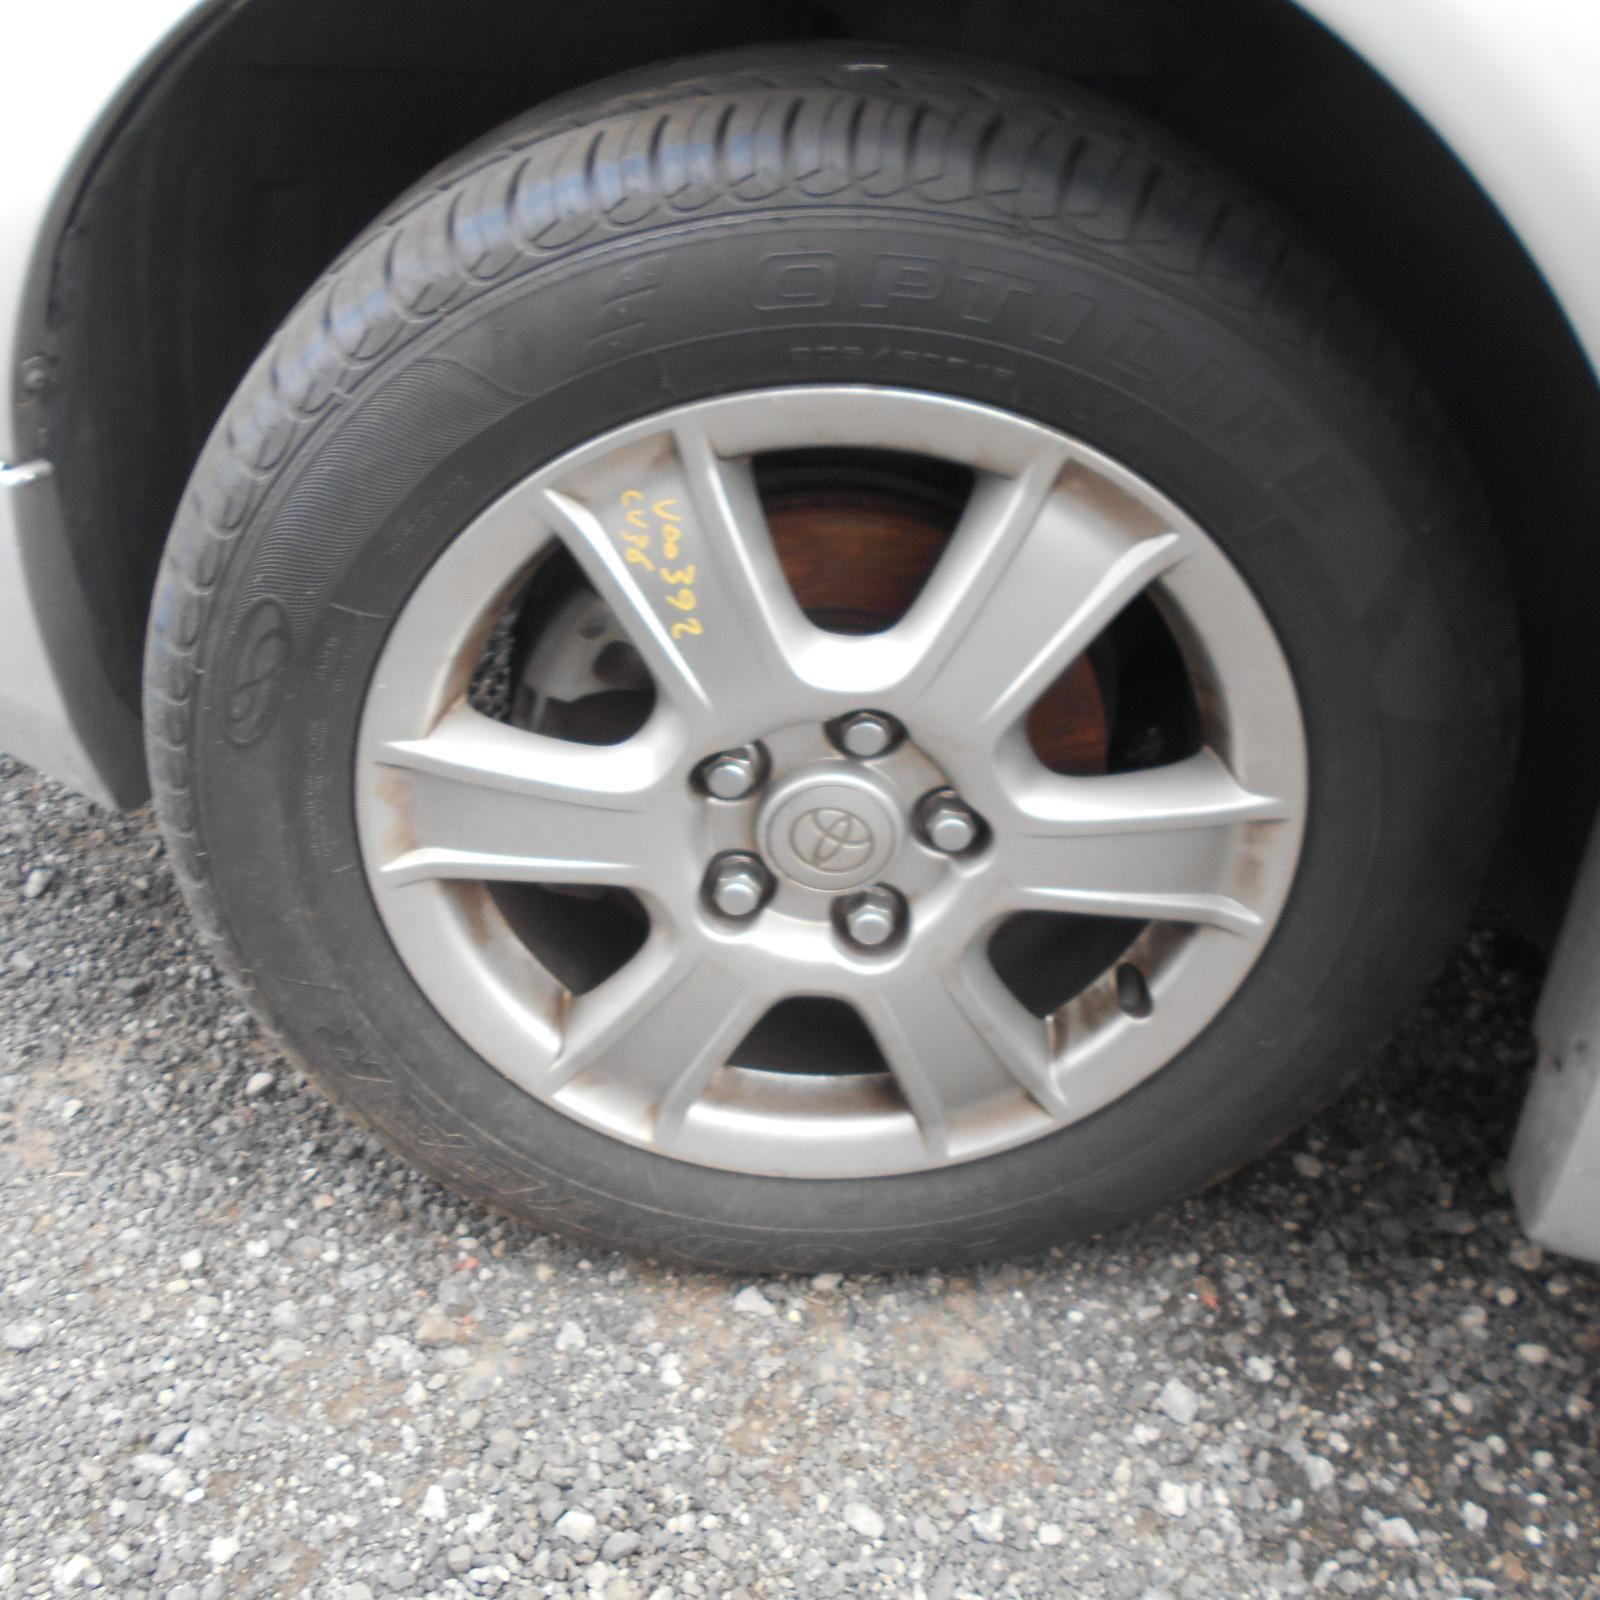 TOYOTA CAMRY, Wheel Mag, FACTORY, 16X6.0IN, SK36, 6 SPOKE, ALTISE/SPORTIVO, 08/02-05/06